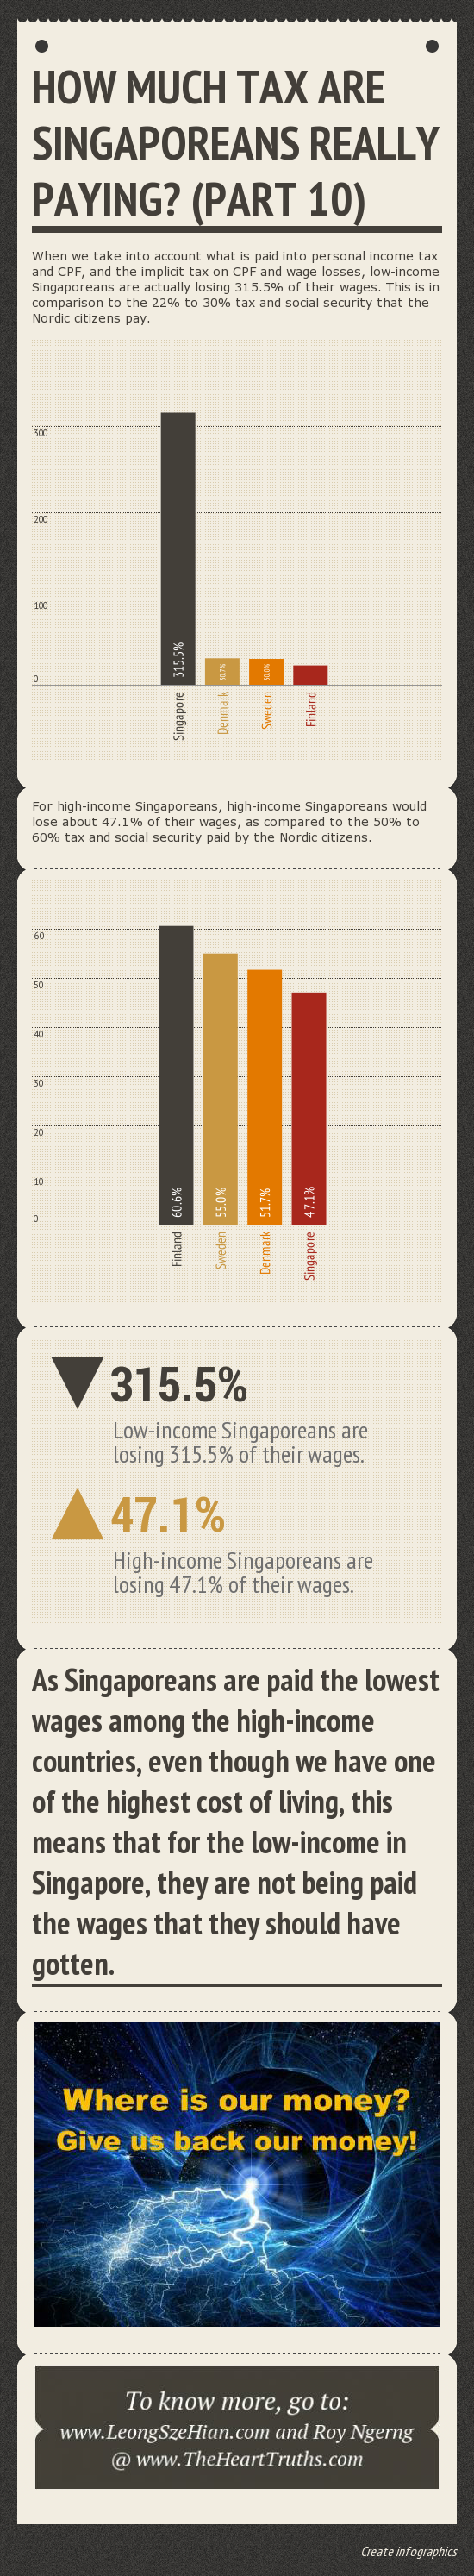 How Much Tax Are Singaporeans Really Paying Part 10